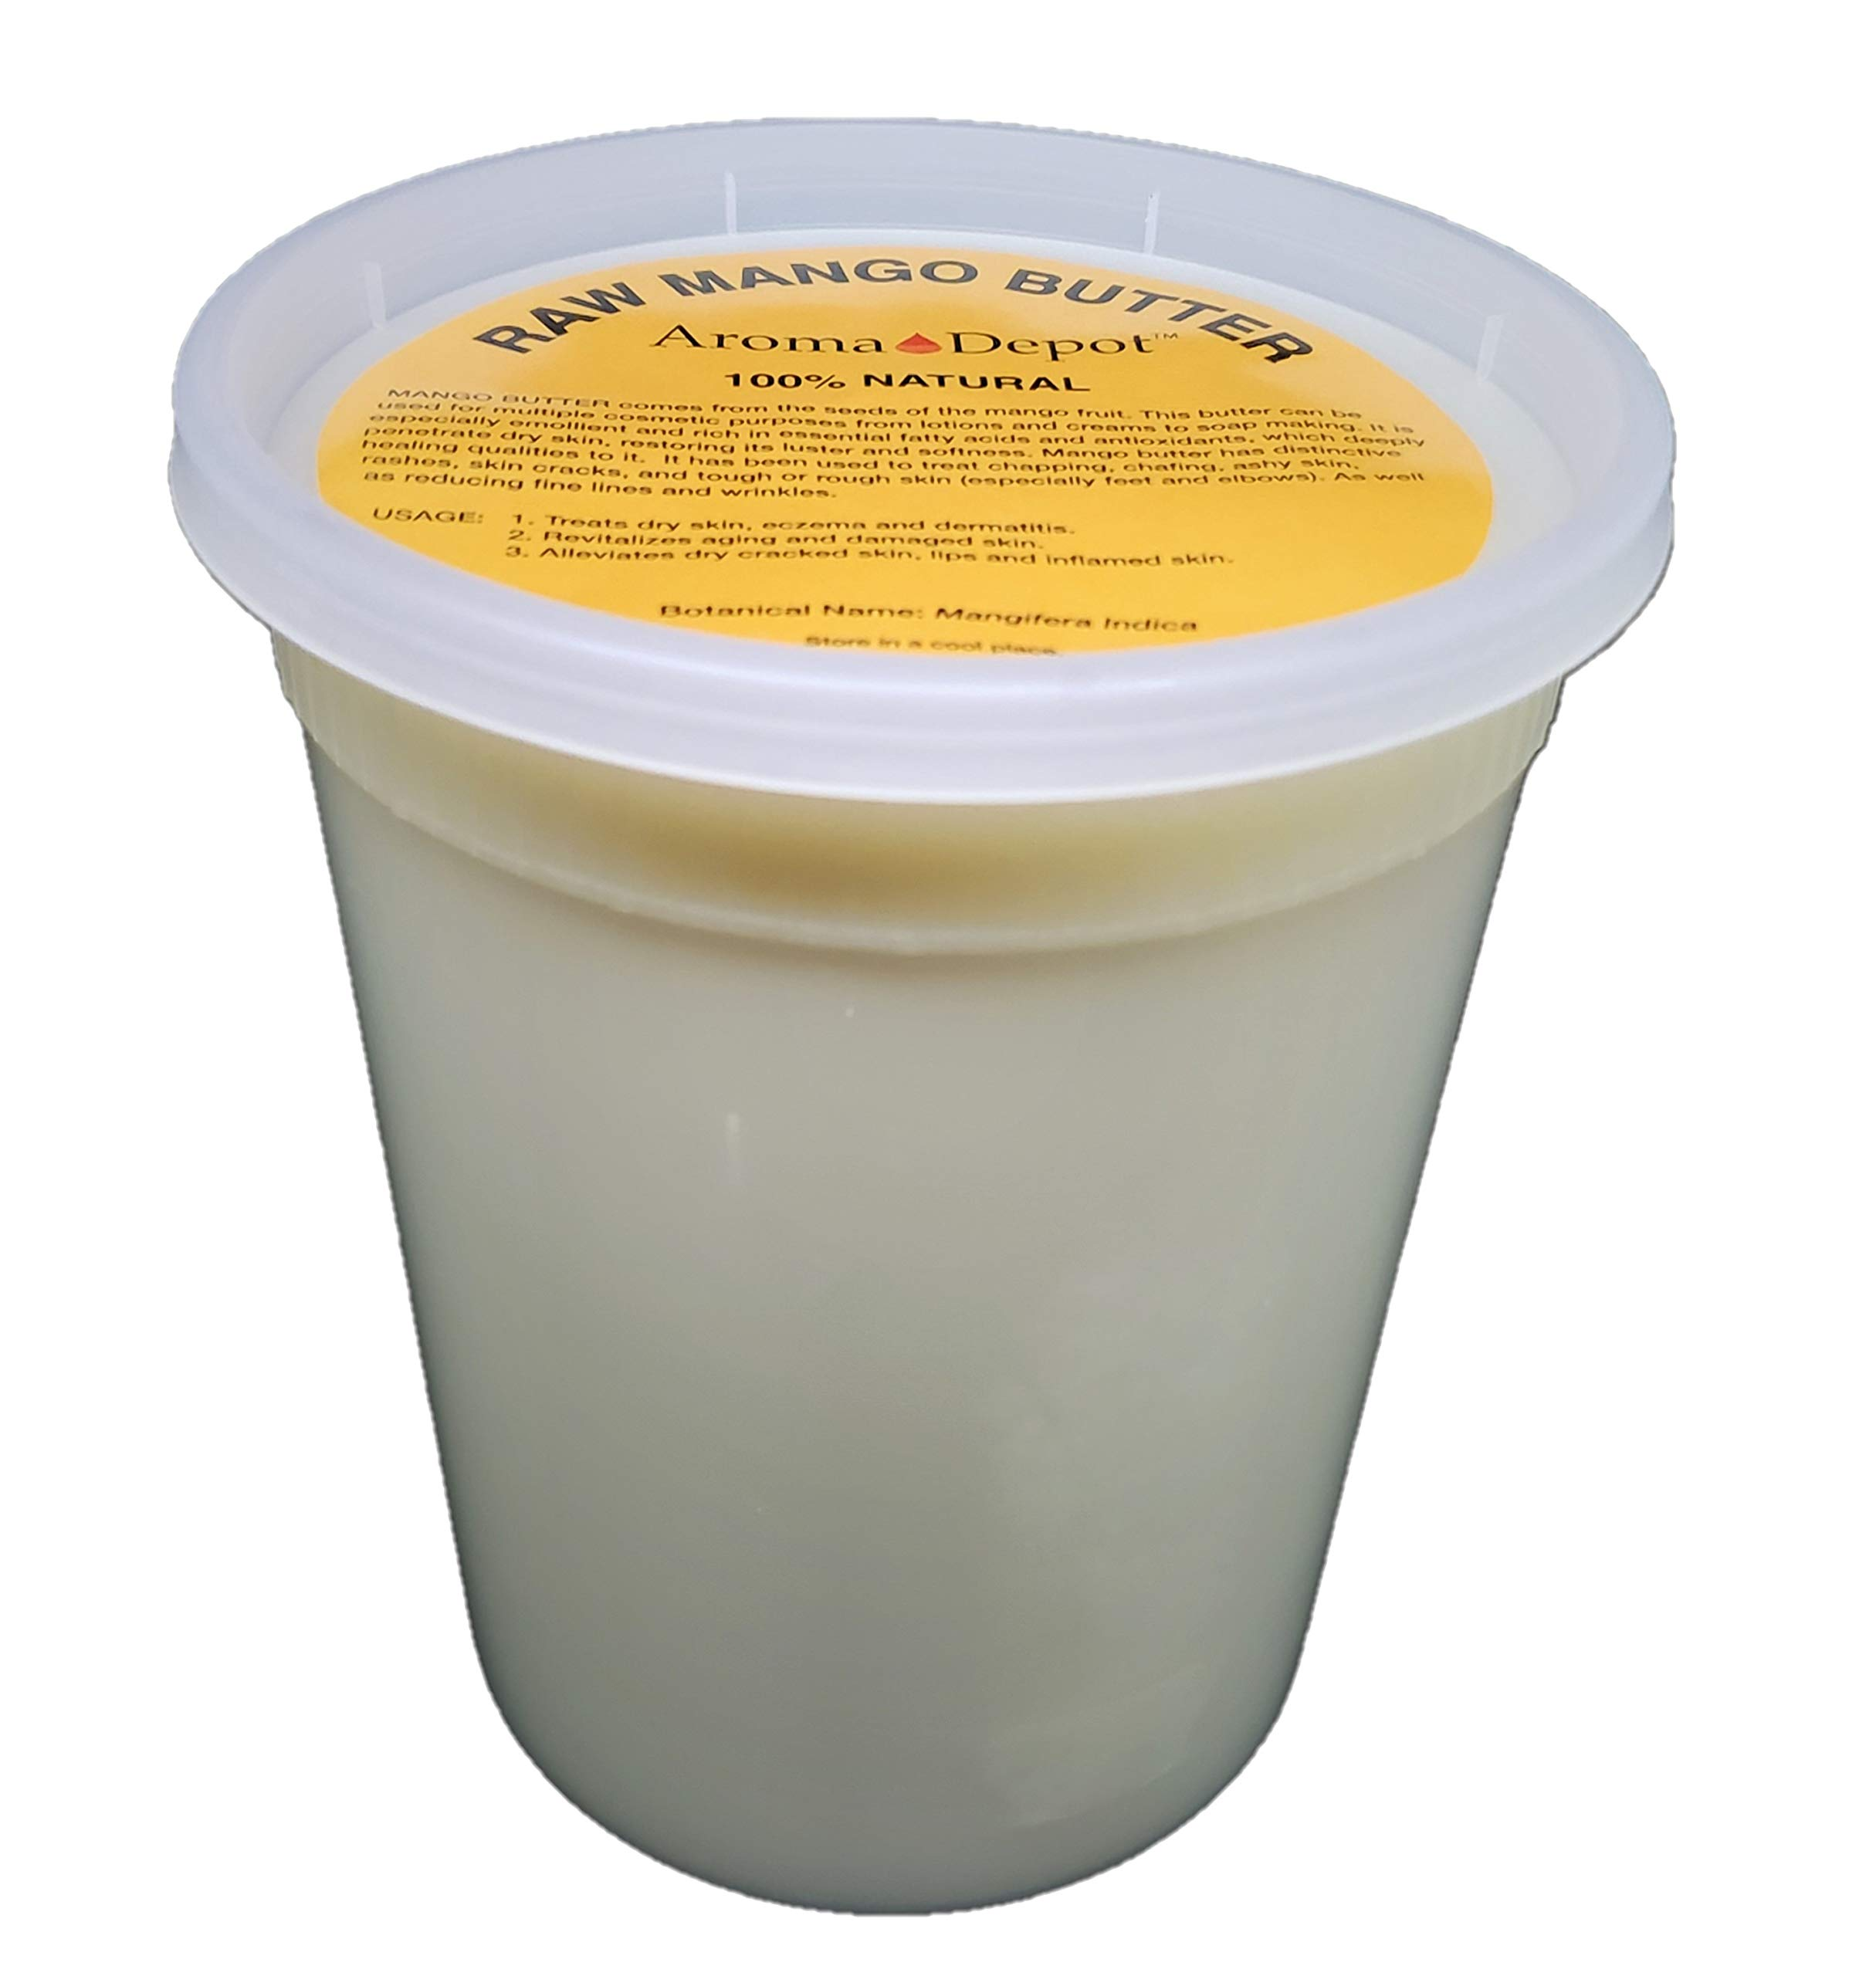 Aroma Depot 2 lb / 32 oz Raw Mango Butter Unrefined 100% Natural Pure Great for Skin, Body, Hair Care. DYI Body Butter, Lotions, Creams Reduces Fine Lines, Wrinkles, used for eczema psoriasis